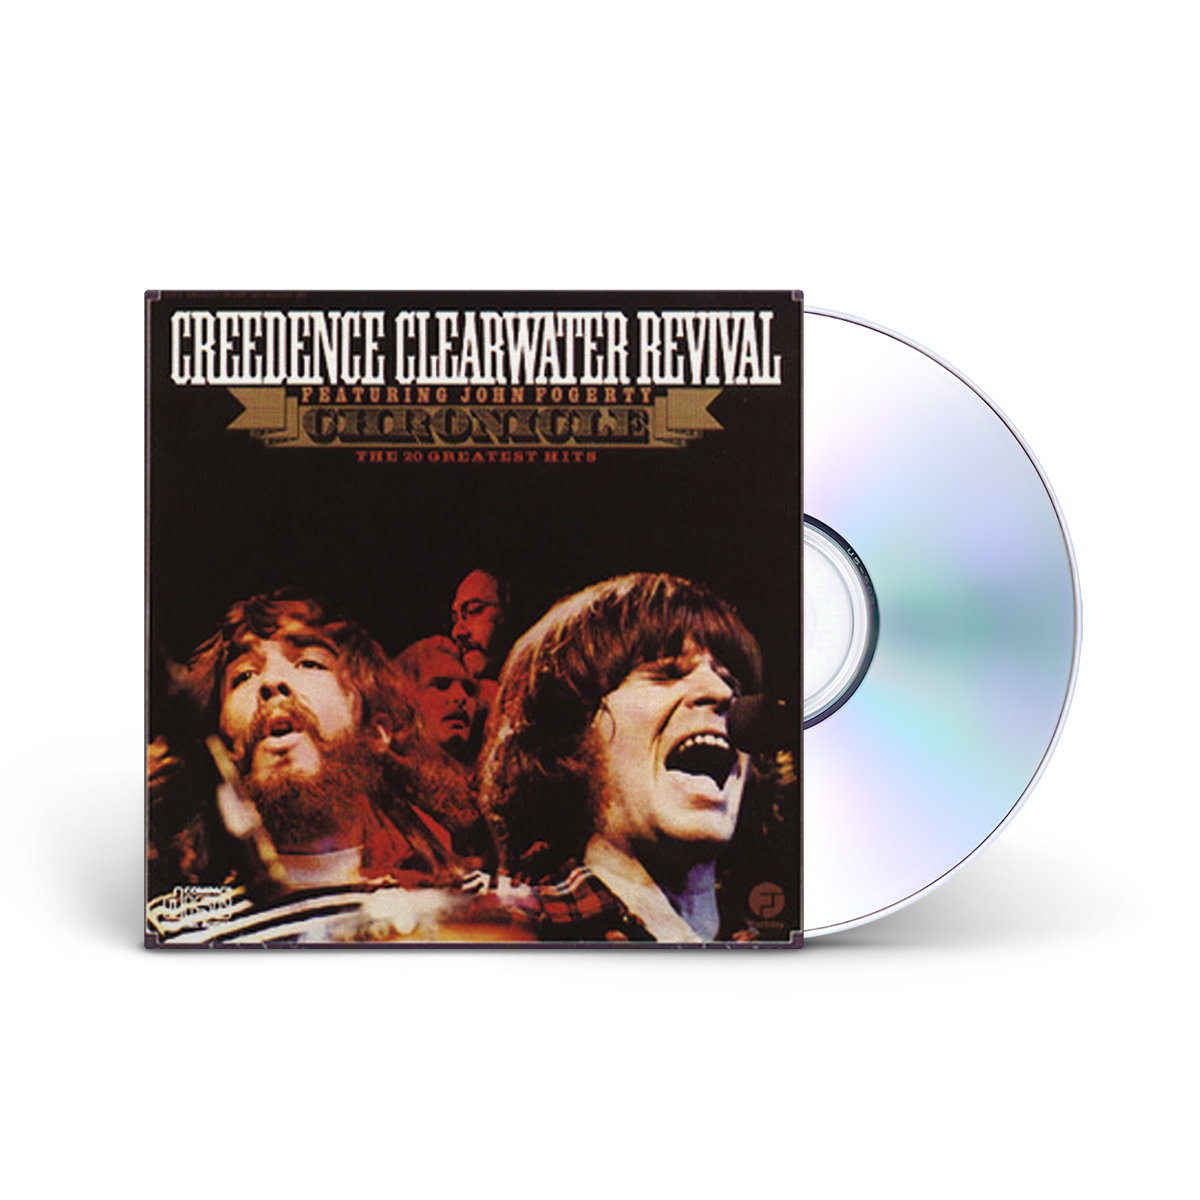 creedence clearwater revival chronicle 20 greatest hits cd shop the musictoday merchandise. Black Bedroom Furniture Sets. Home Design Ideas